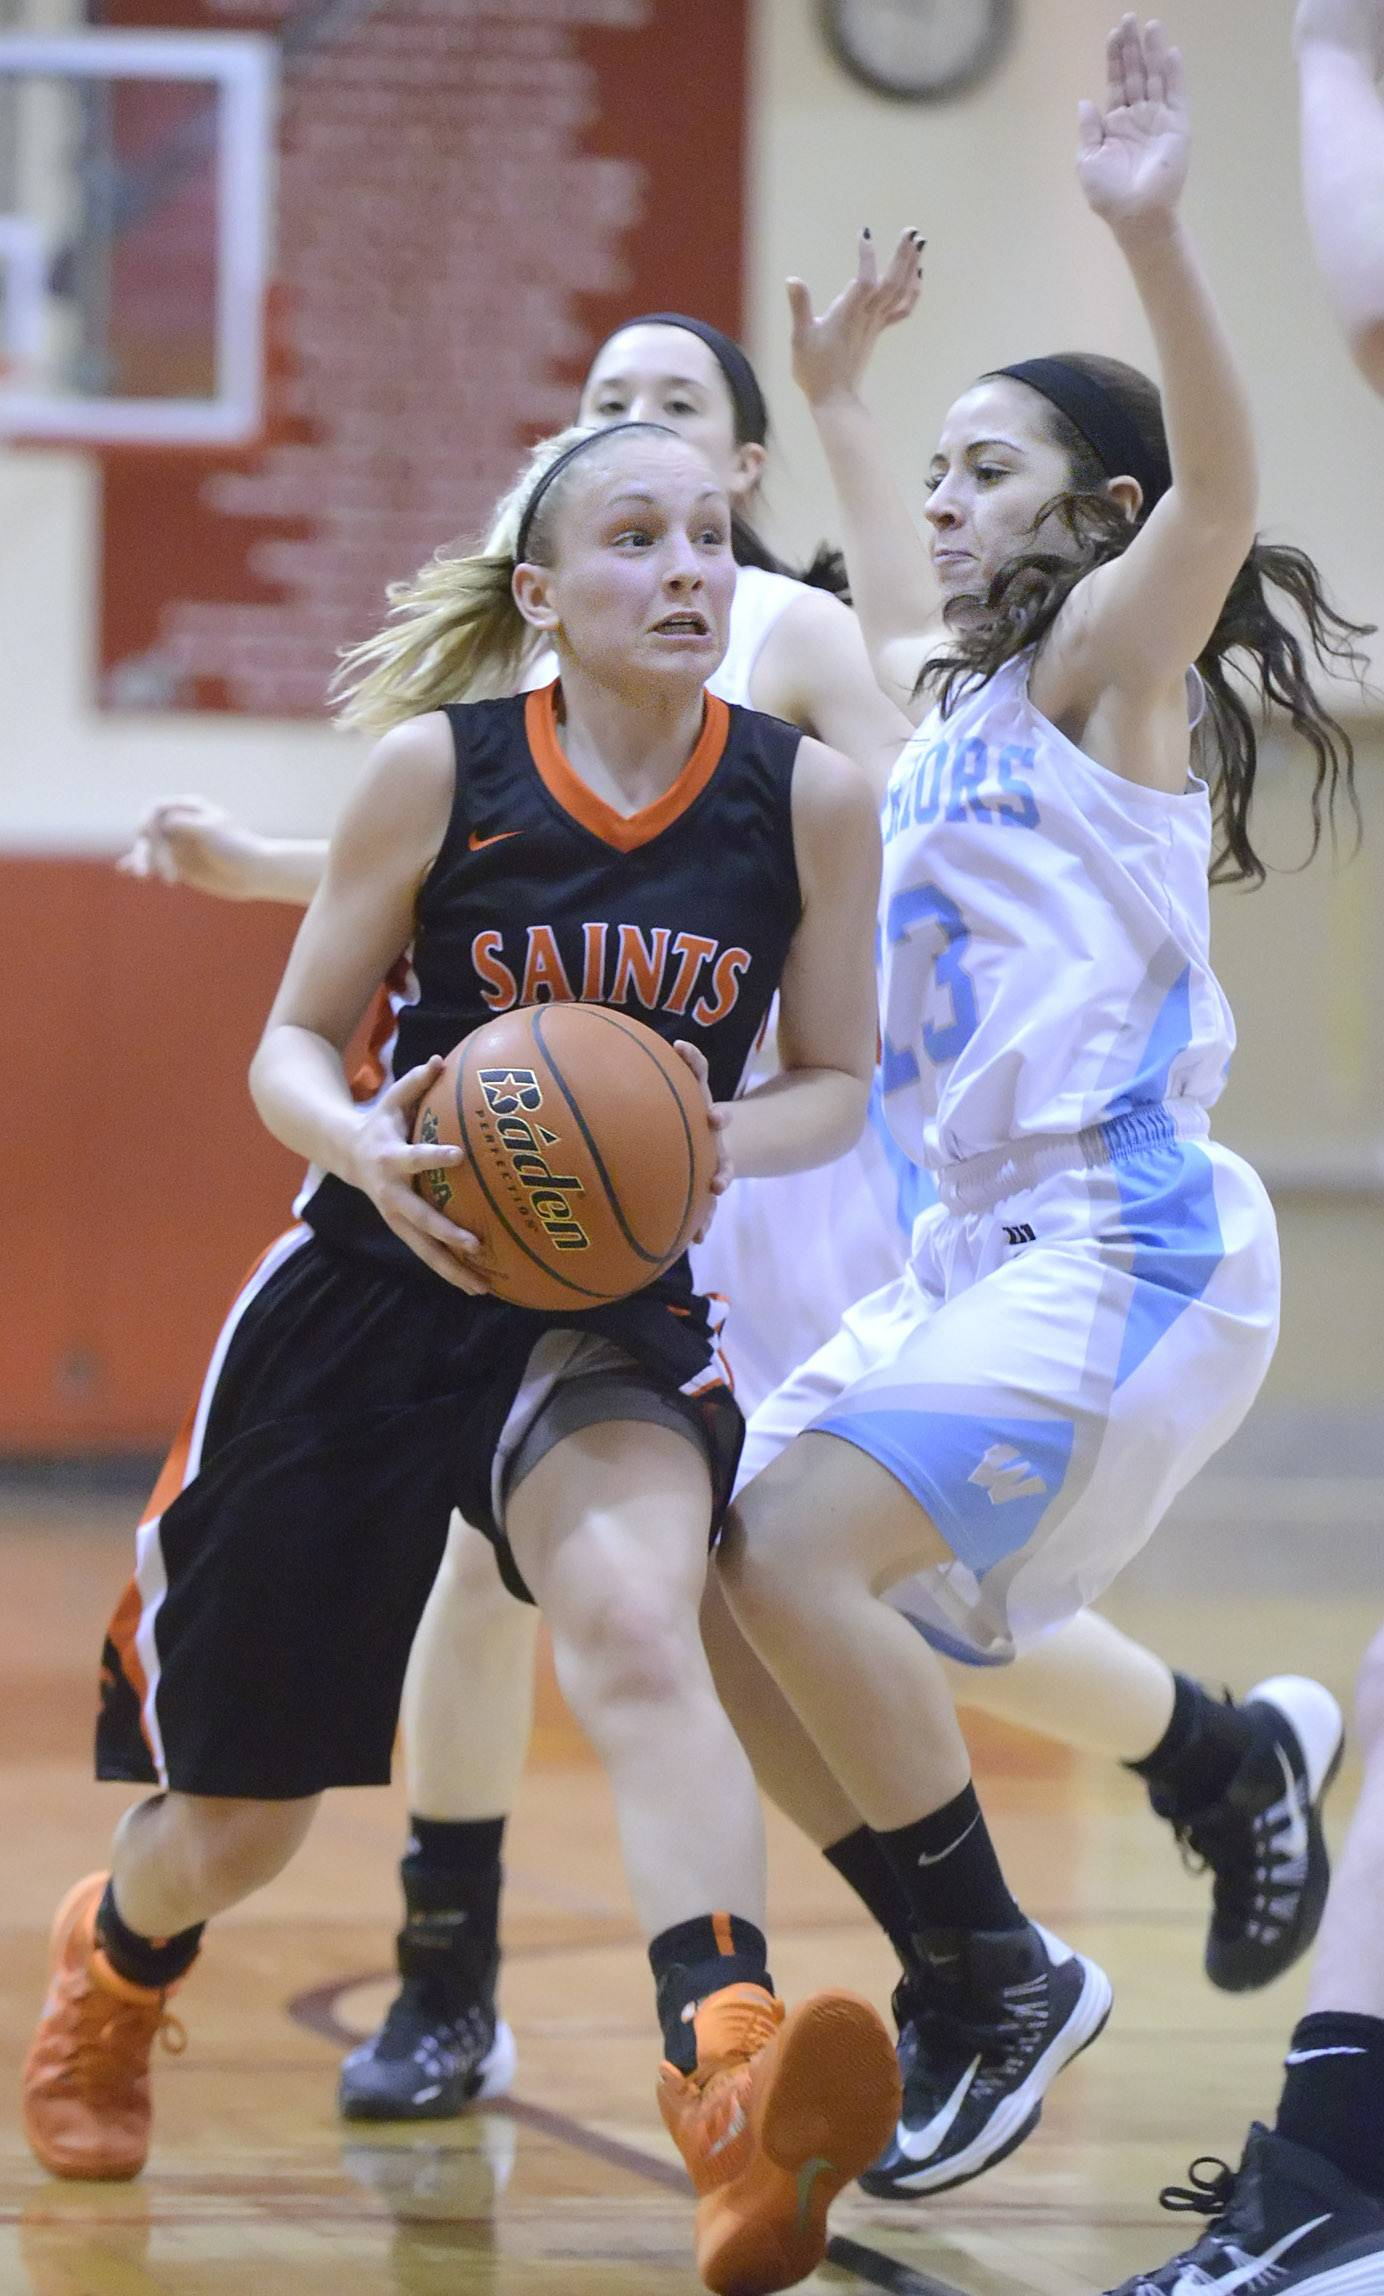 St. Charles East's Katelyn Claussner maneuvers her way around Willowbrook's Allison Torres in the second quarter .